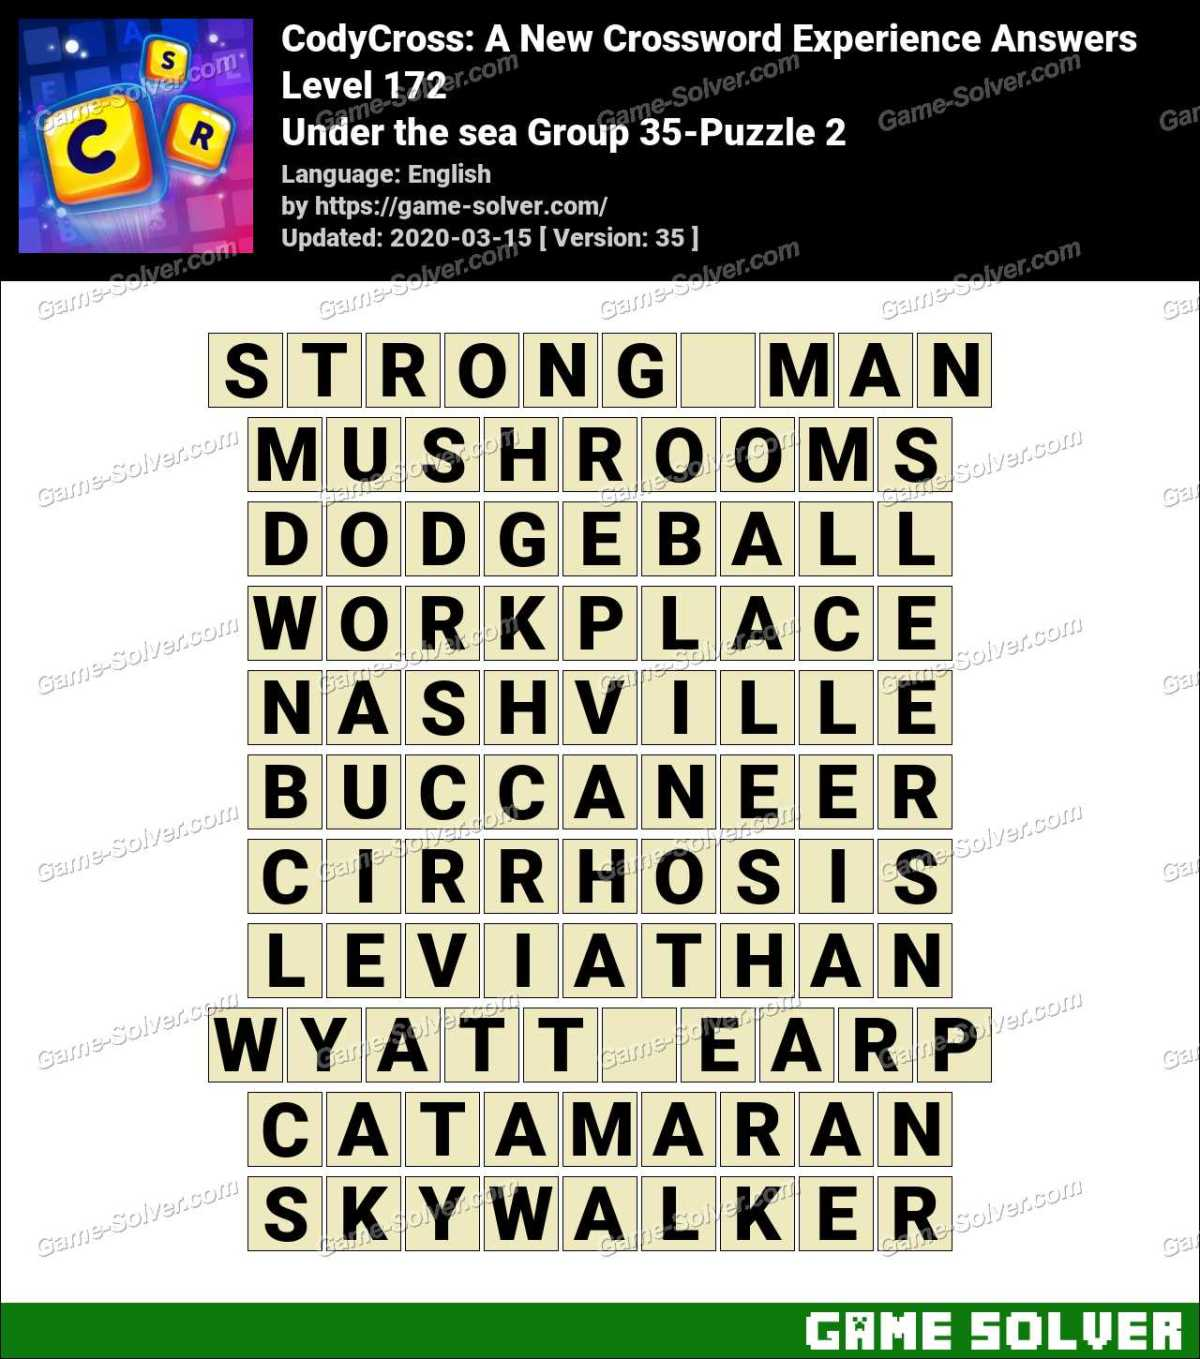 CodyCross Under the sea Group 35-Puzzle 2 Answers